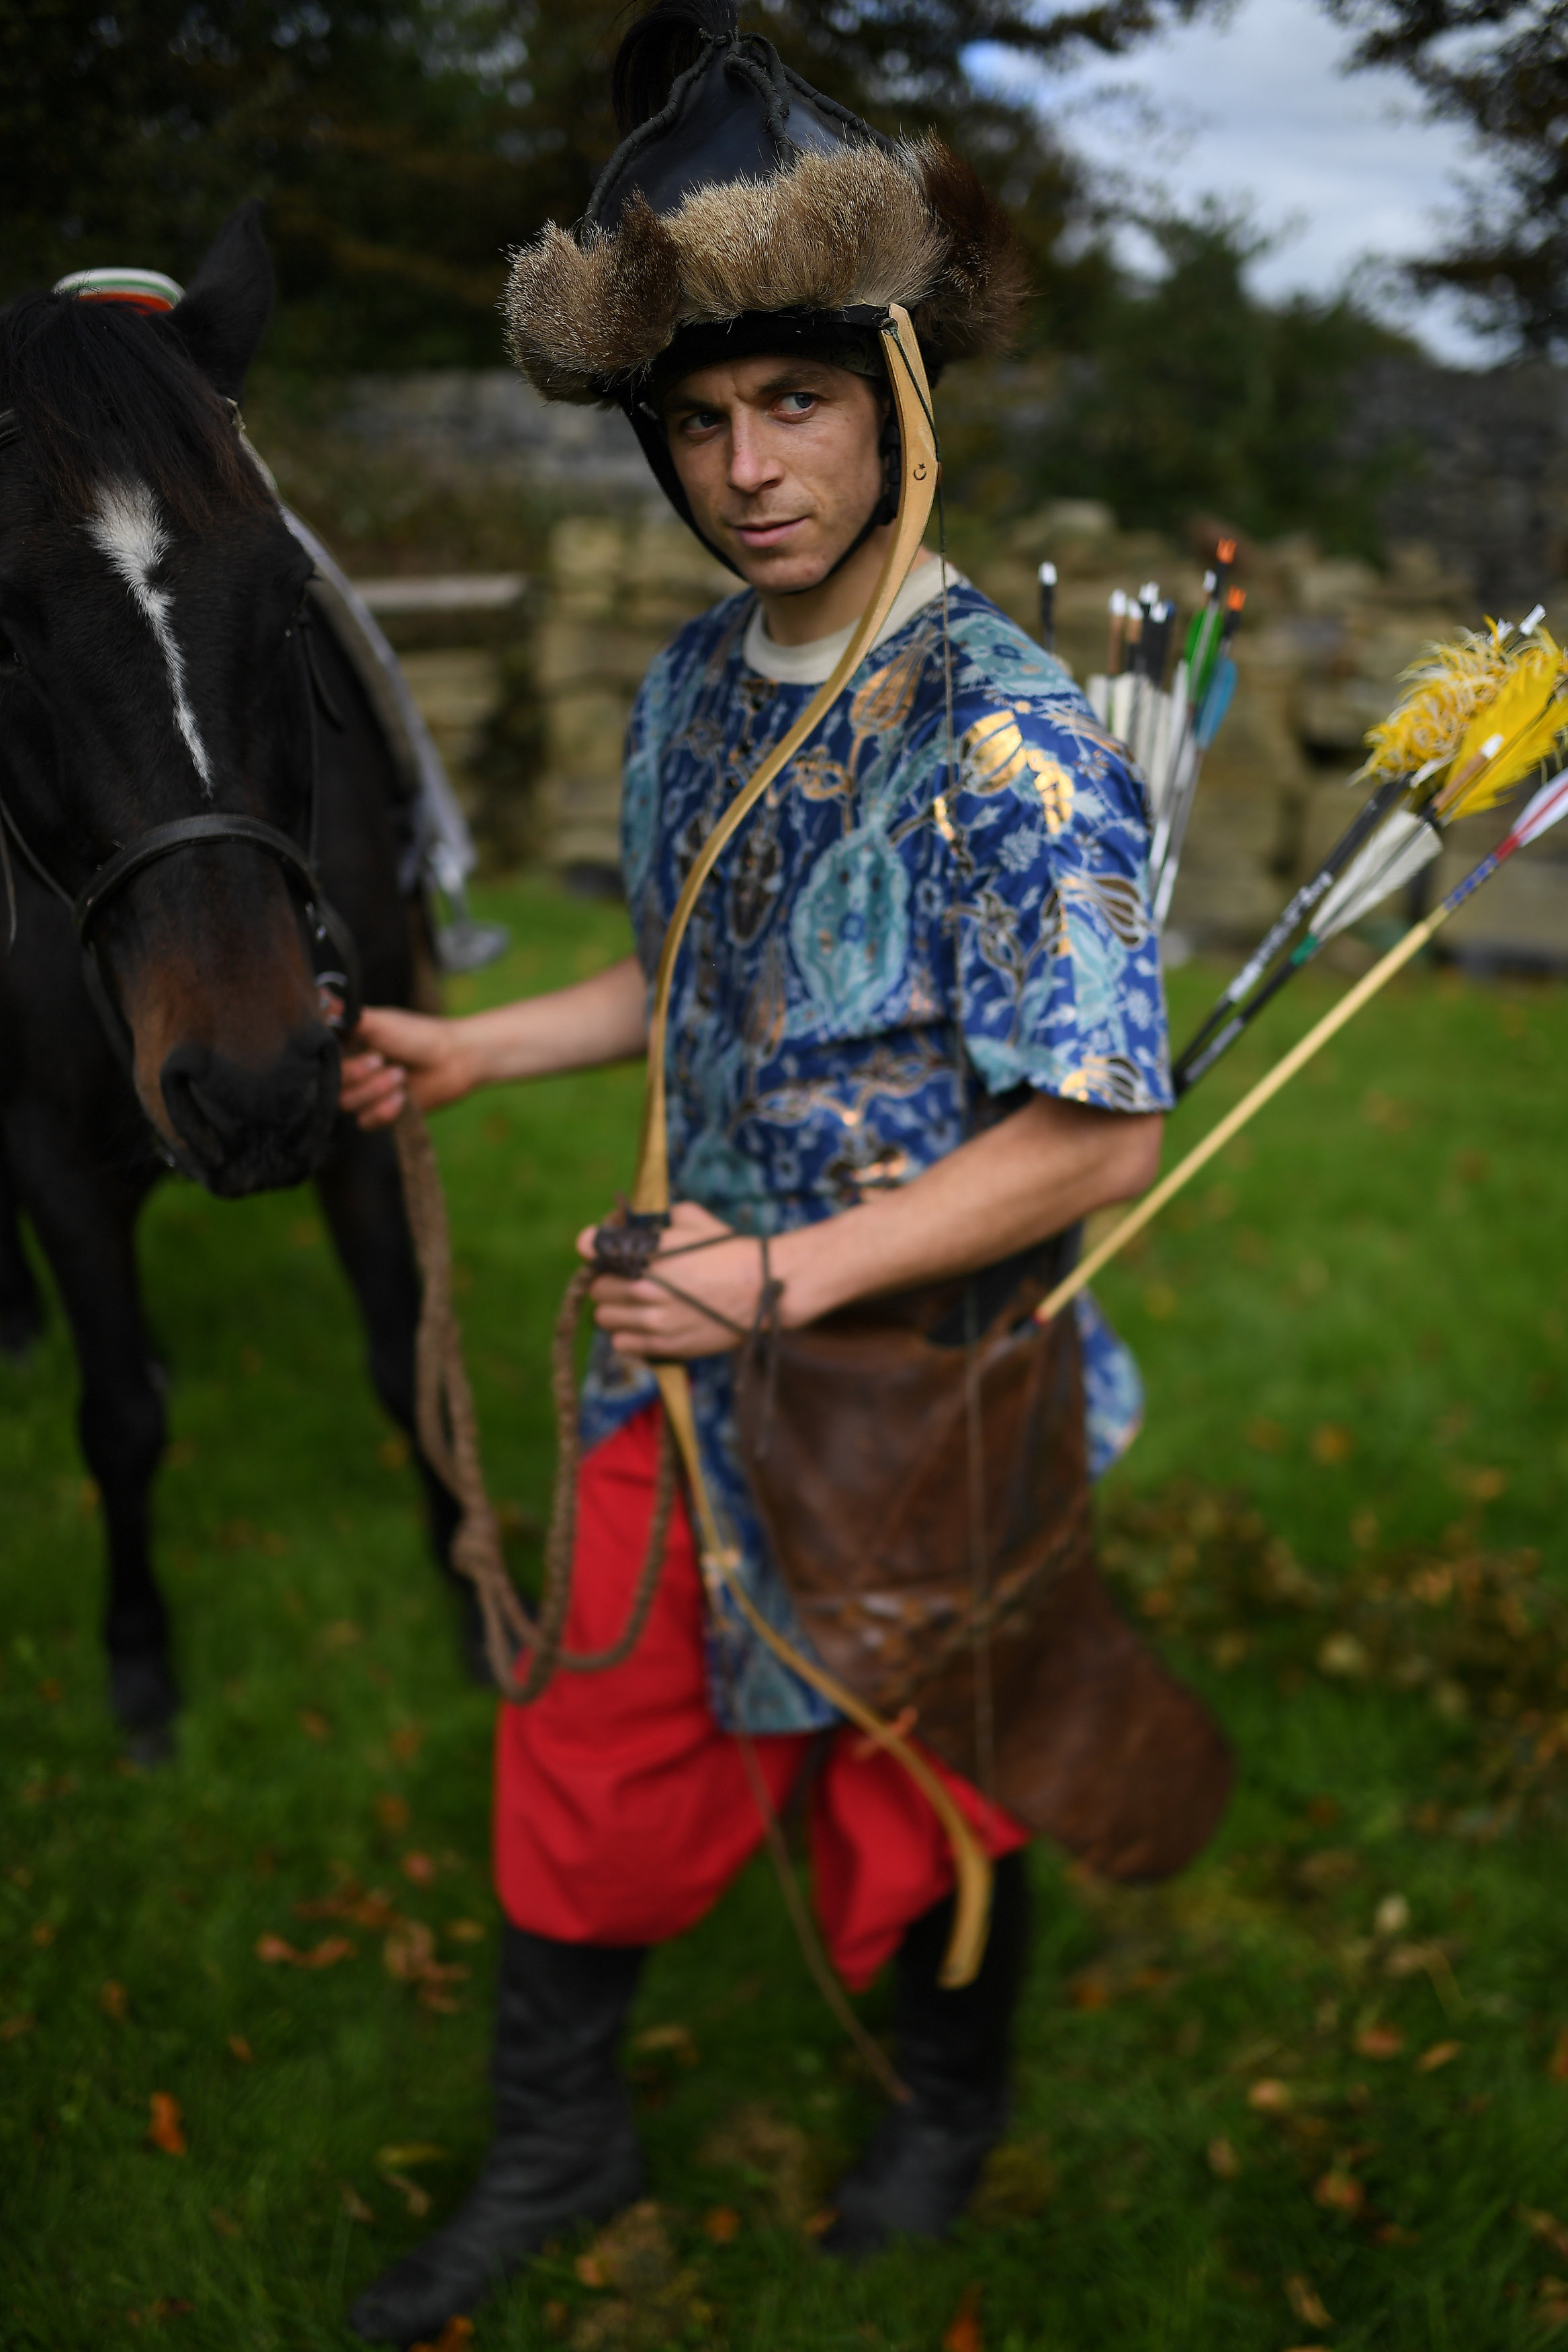 Andrew O'Donnghaile dressed as an Ottoman warrior prepares to mount horse Bilbo to demonstrate horseback archery skills during a medieval combat festival at Claregalway castle in Galway